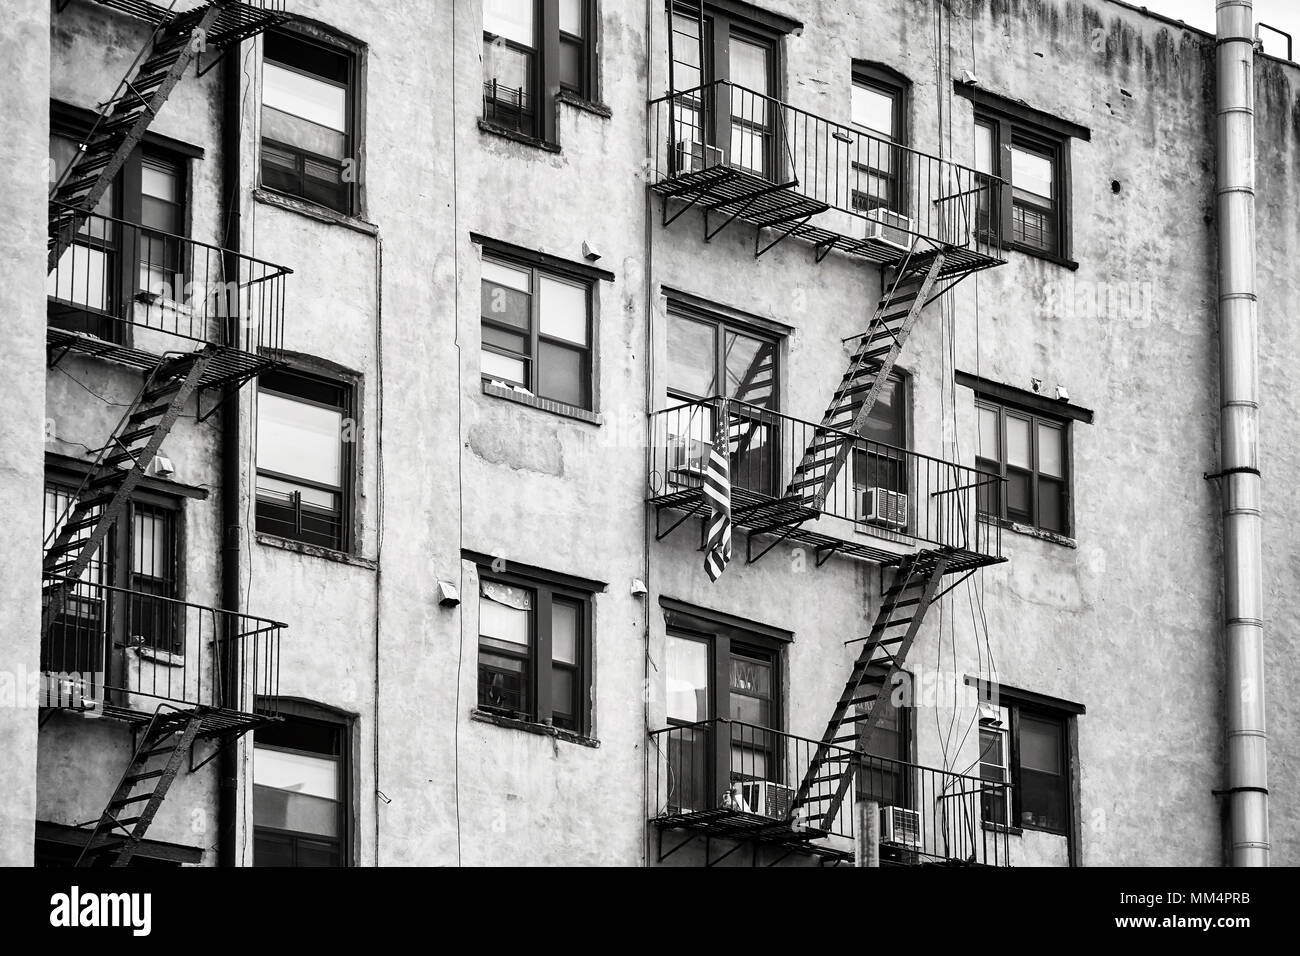 Black and white picture of old building with fire escapes, one of the New York City symbols, USA. - Stock Image